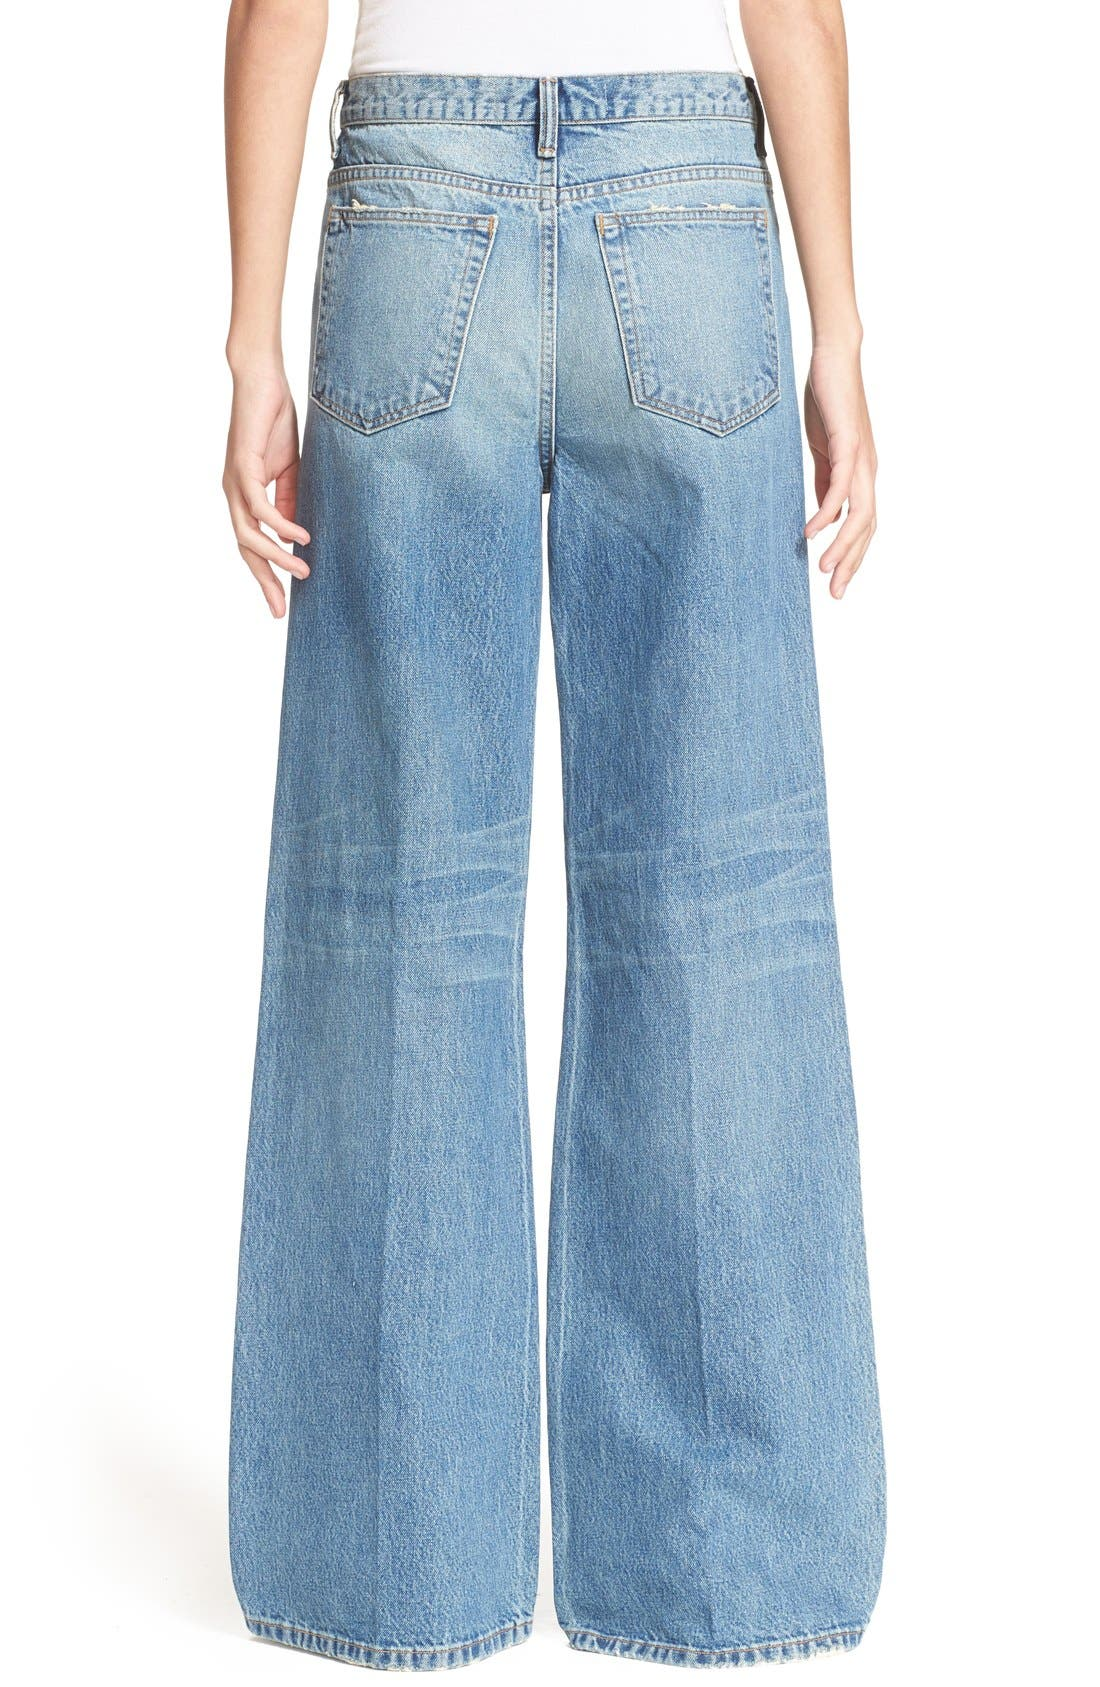 Denim x Alexander Wang Rave Wide Leg Jeans,                             Alternate thumbnail 5, color,                             453